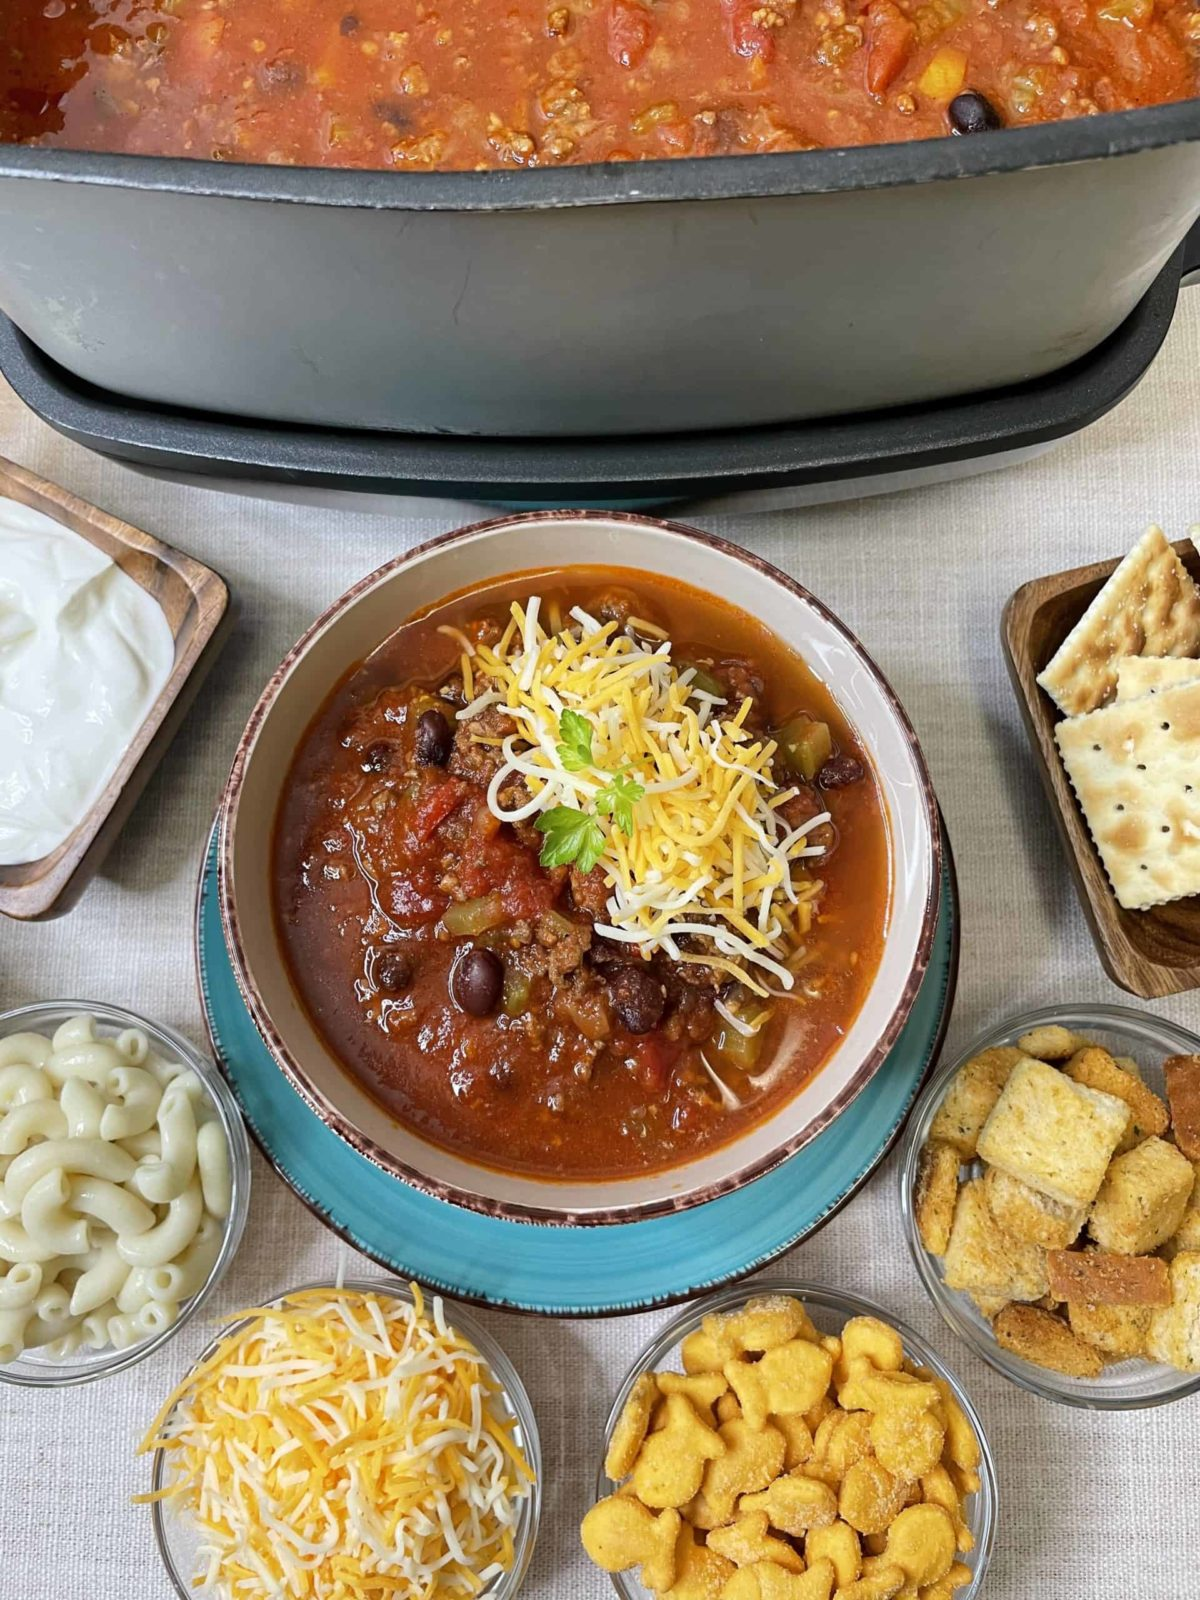 Slow Cooker Chili with Condiments on the side.